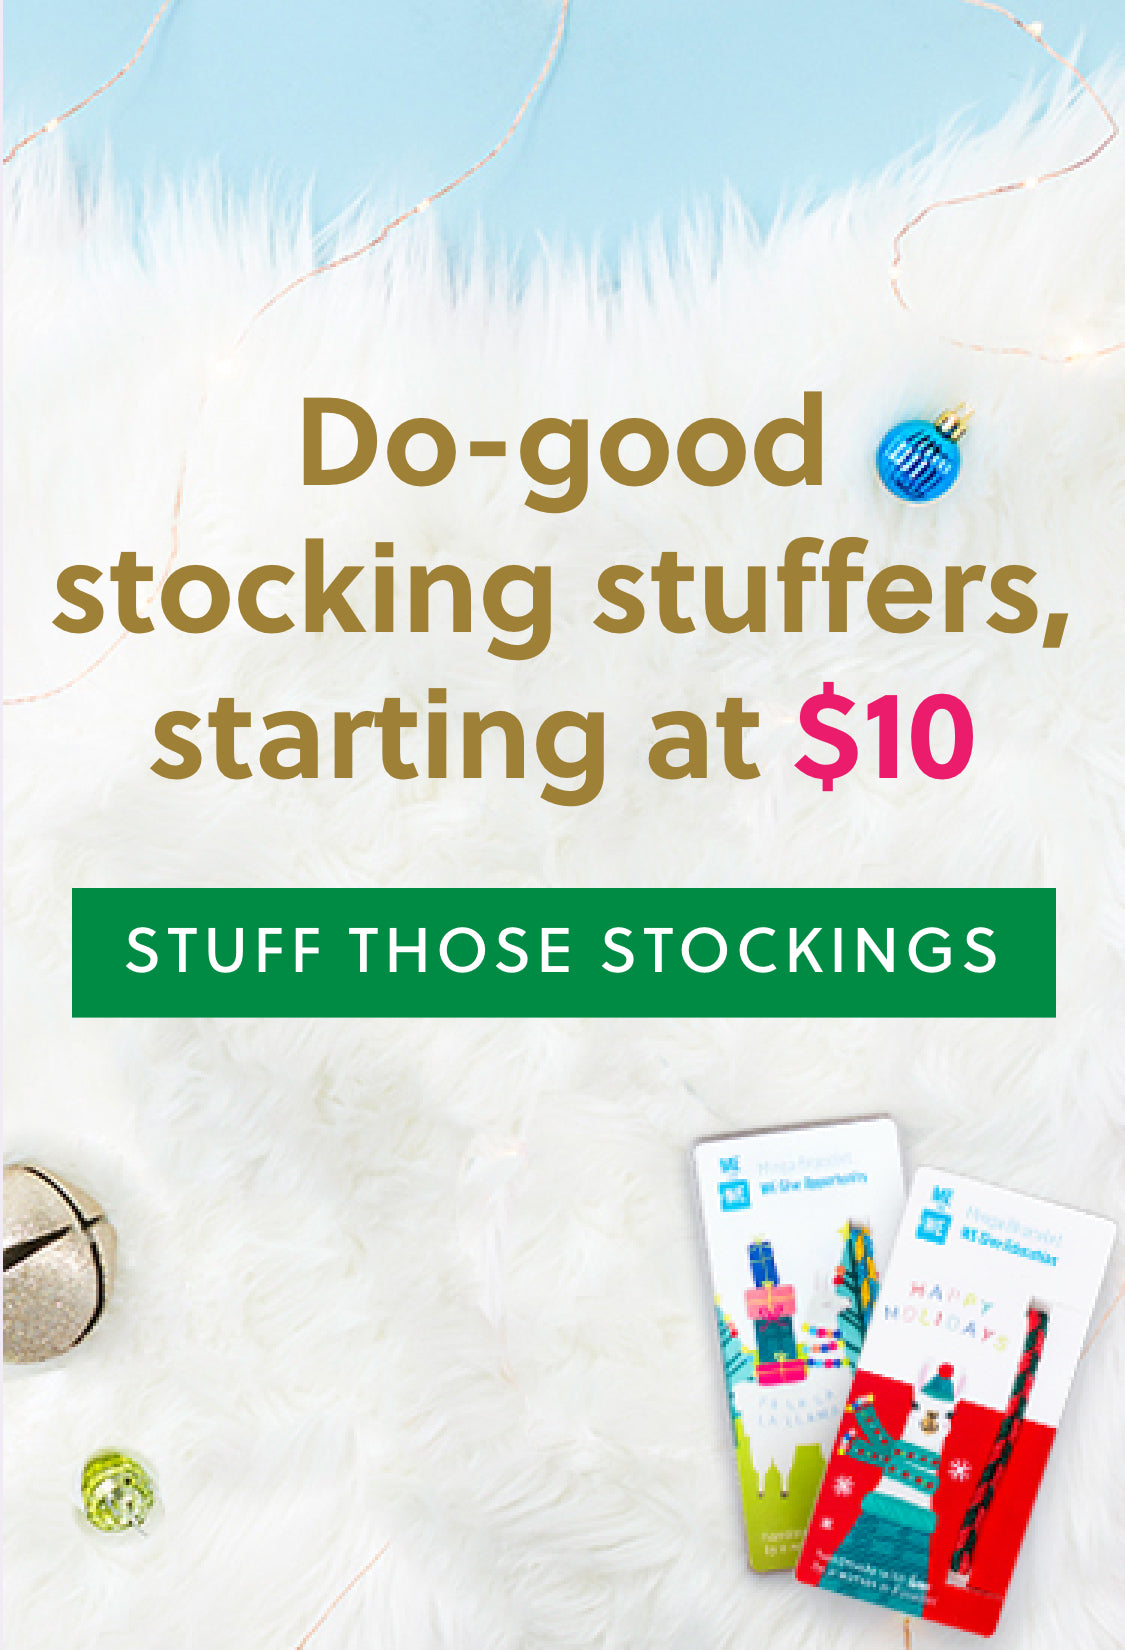 Do-good stocking stuffers, starting at $10 - Stuff those stockings